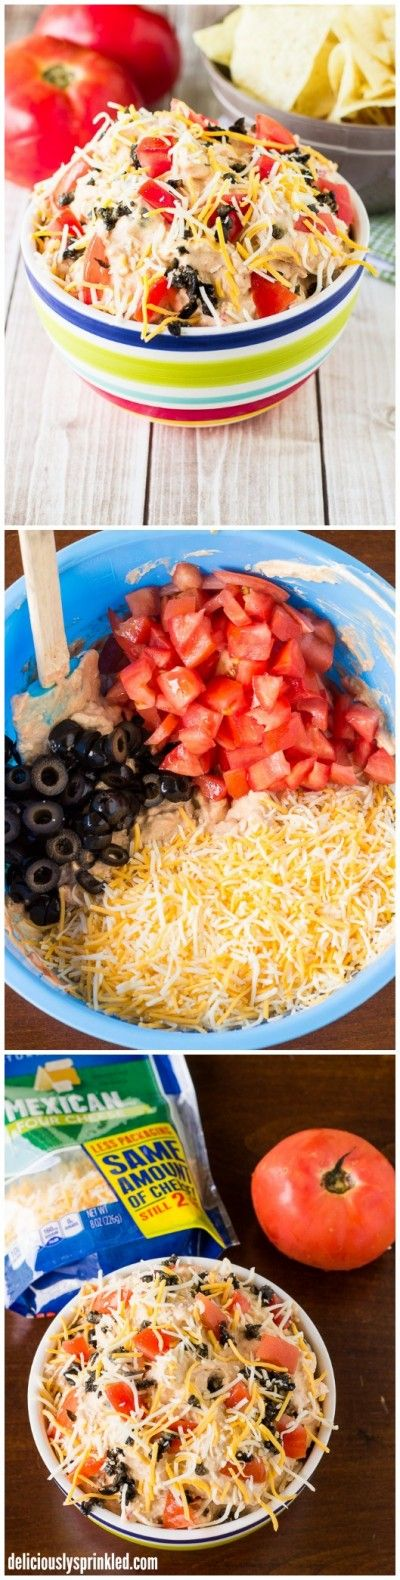 The BEST Taco Dip EVER! #WalmartProduce